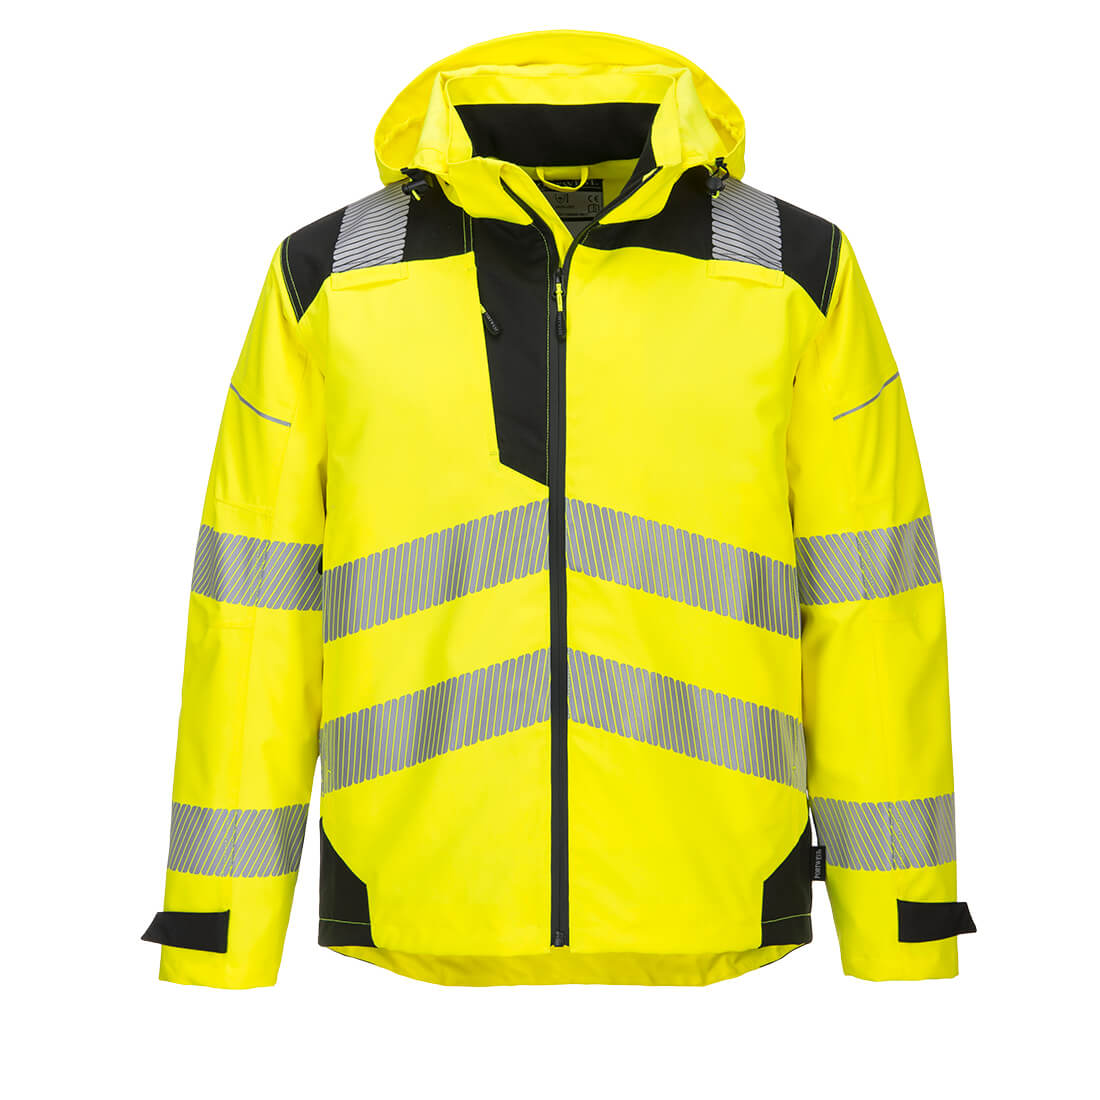 PW3 Extreme Breathable Rain Jacket Yellow/Black 3 XL